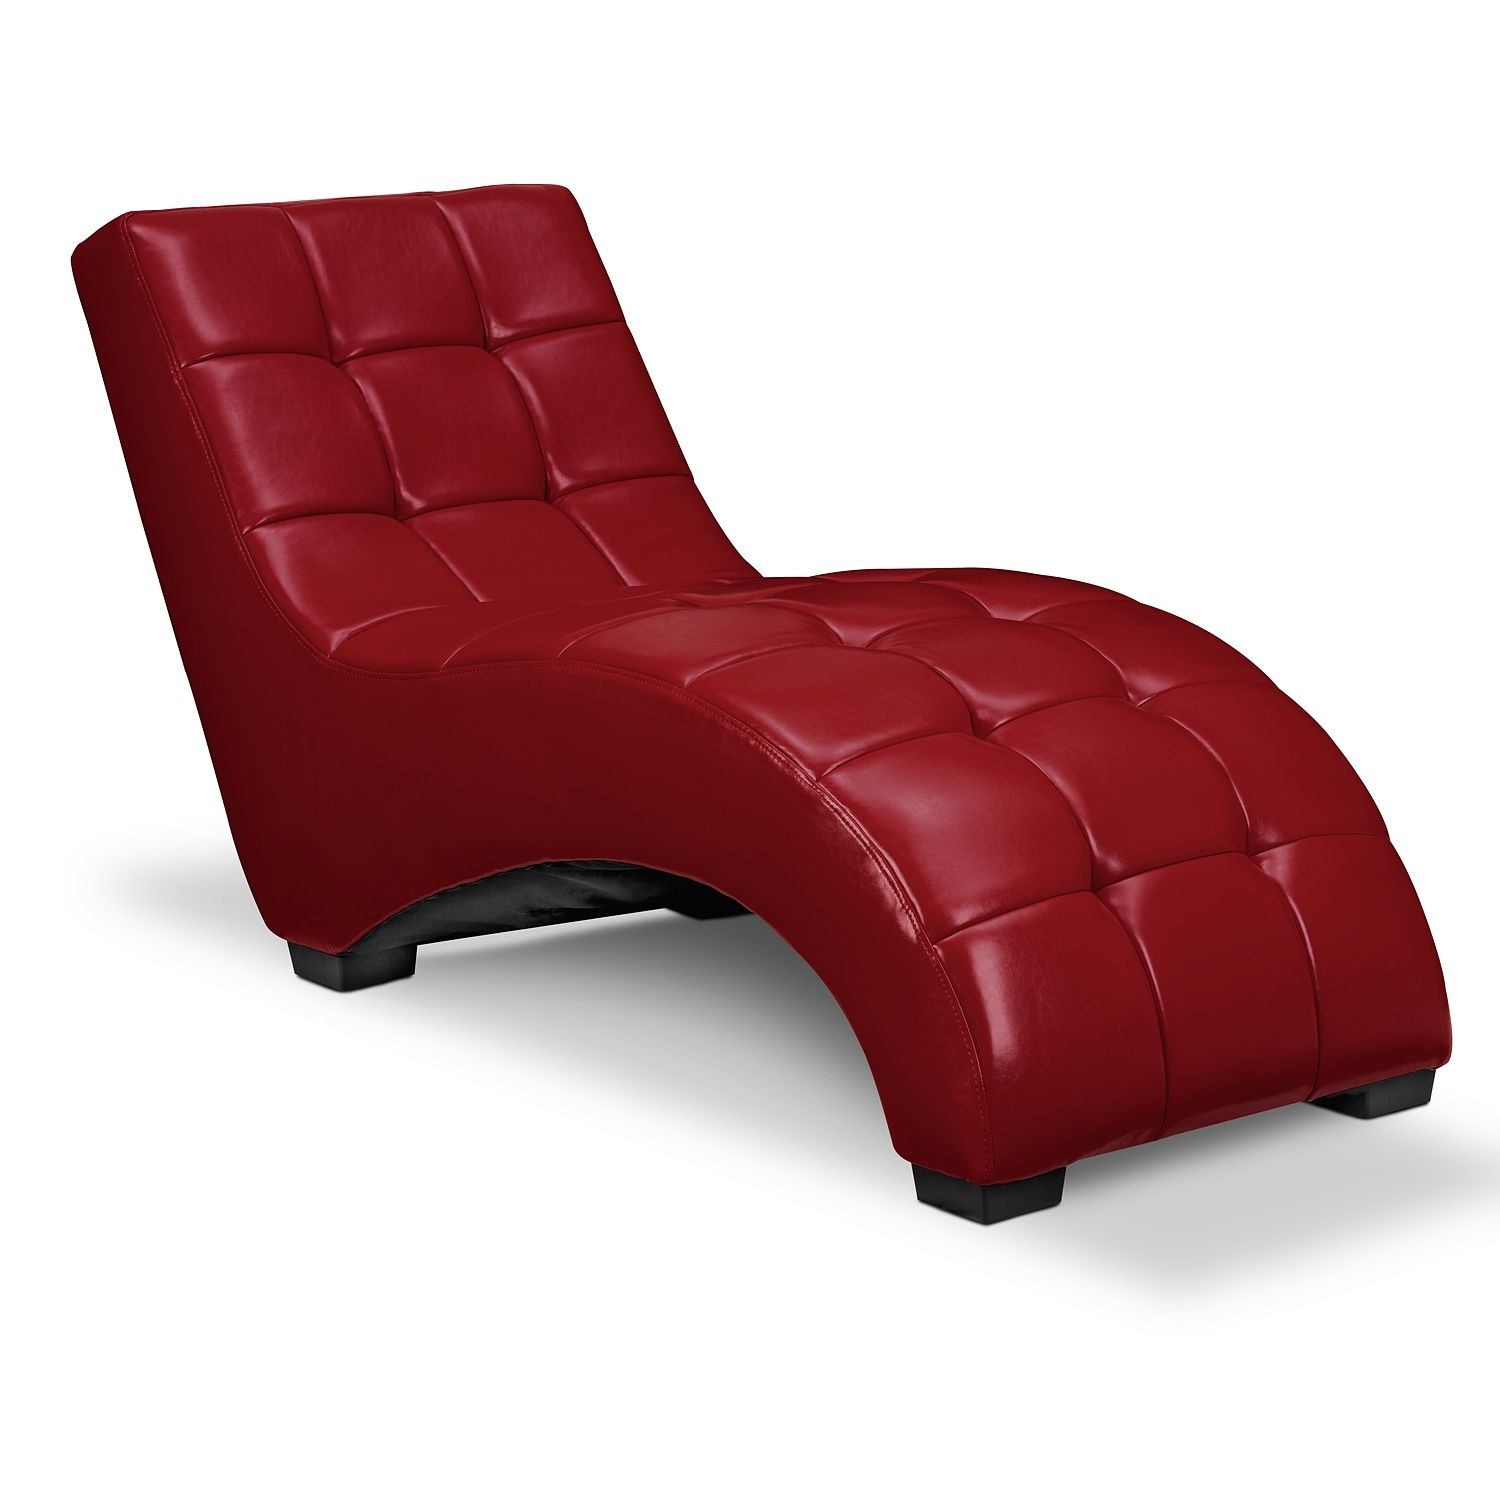 Cool Chaise Chair Red Leather Chaise Lounge Chairs